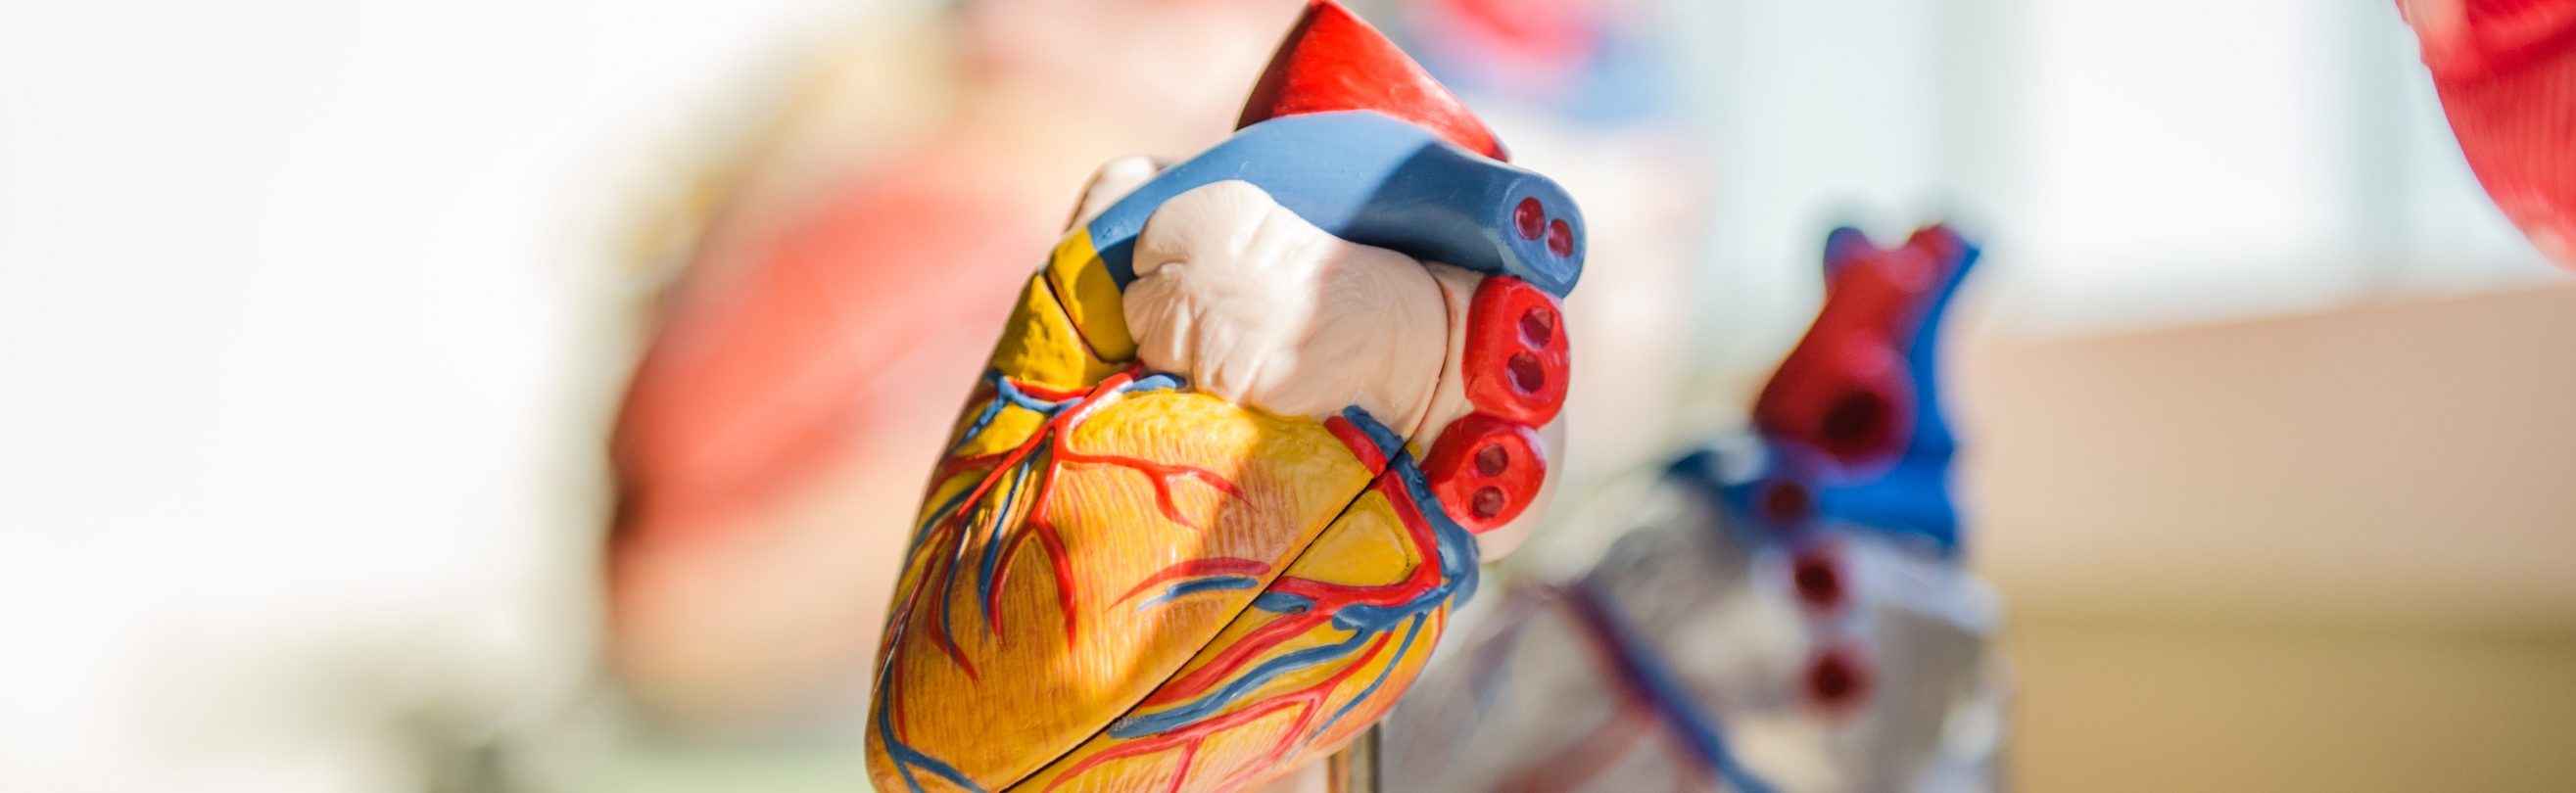 Heart model on small statue